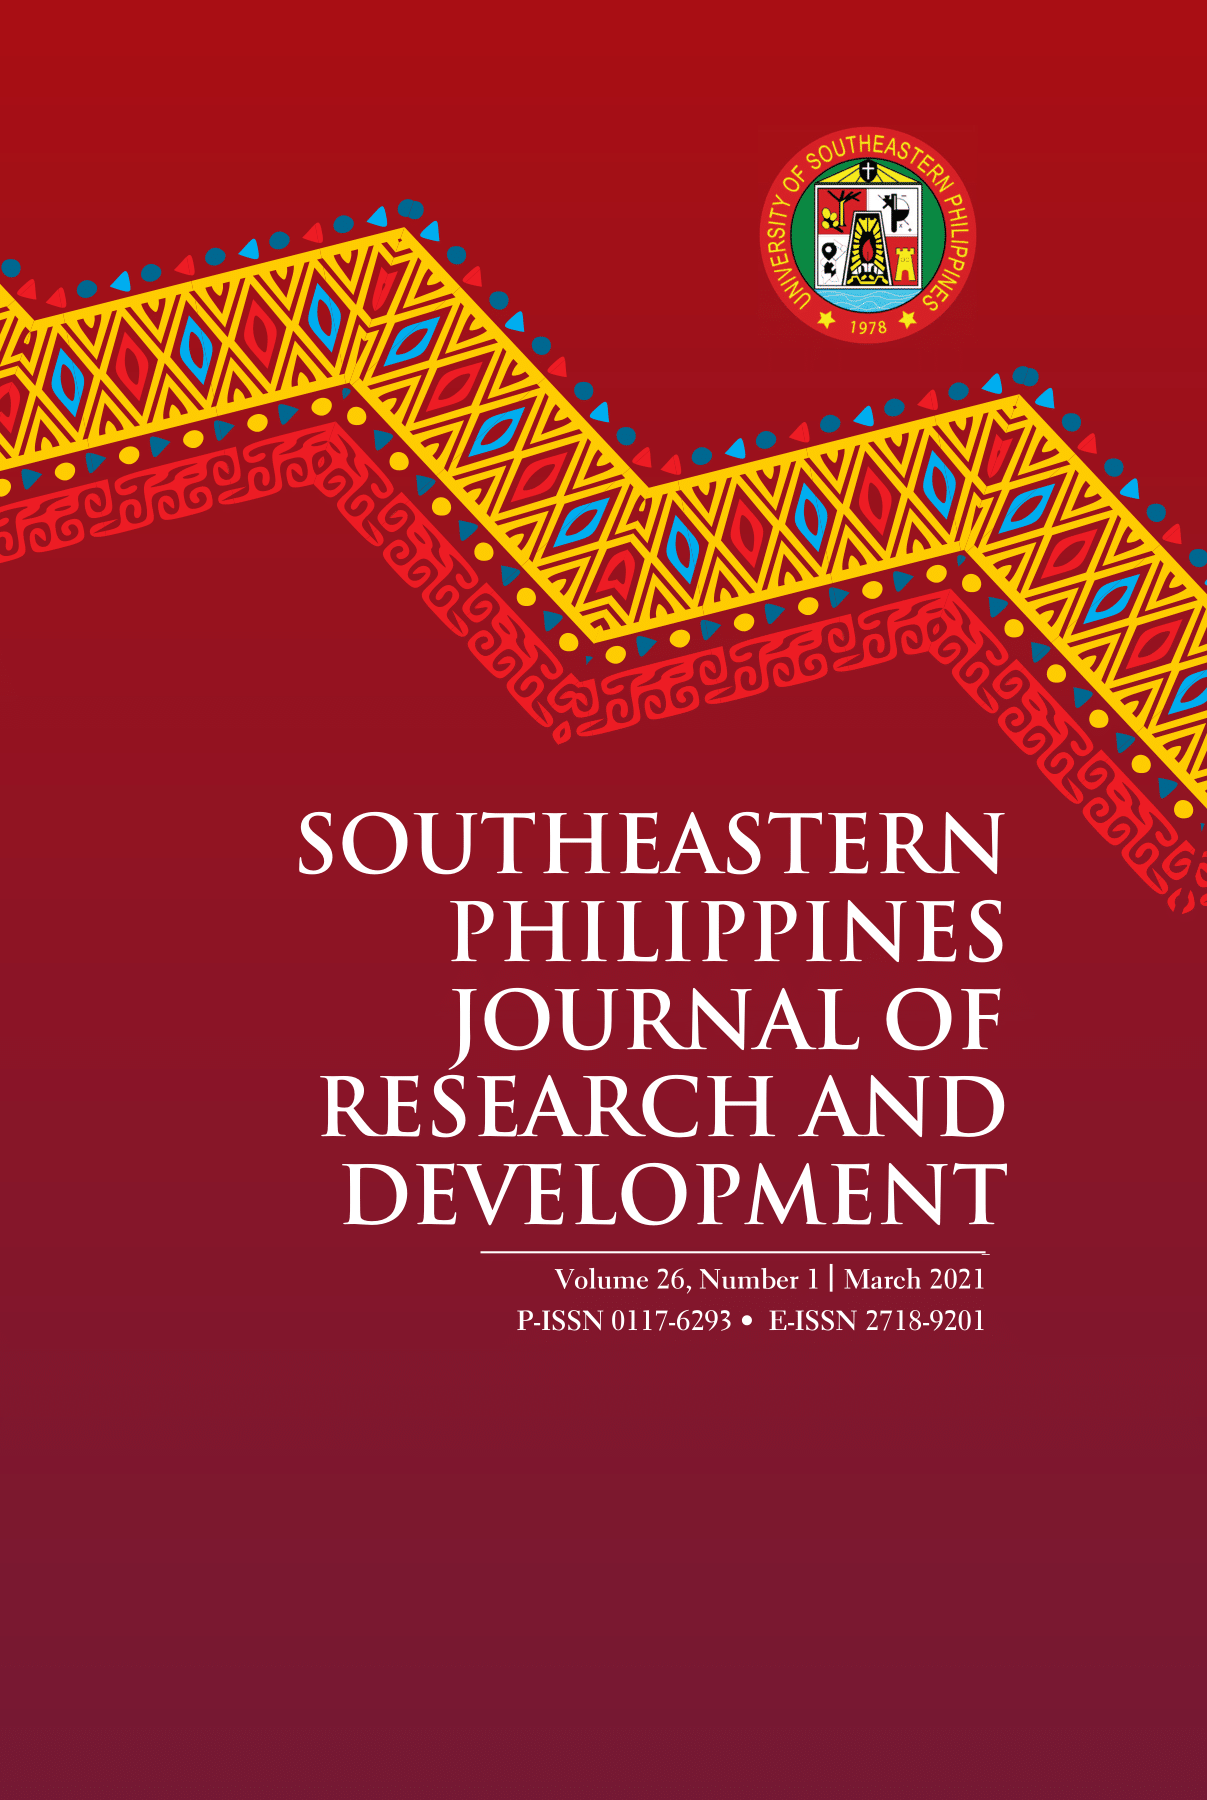 spjrd Southeastern Philippines Journal of Research and Development Volume 26, Number 1 March 2021 P-ISSN 0117-6293 E-ISSN 2718-9201